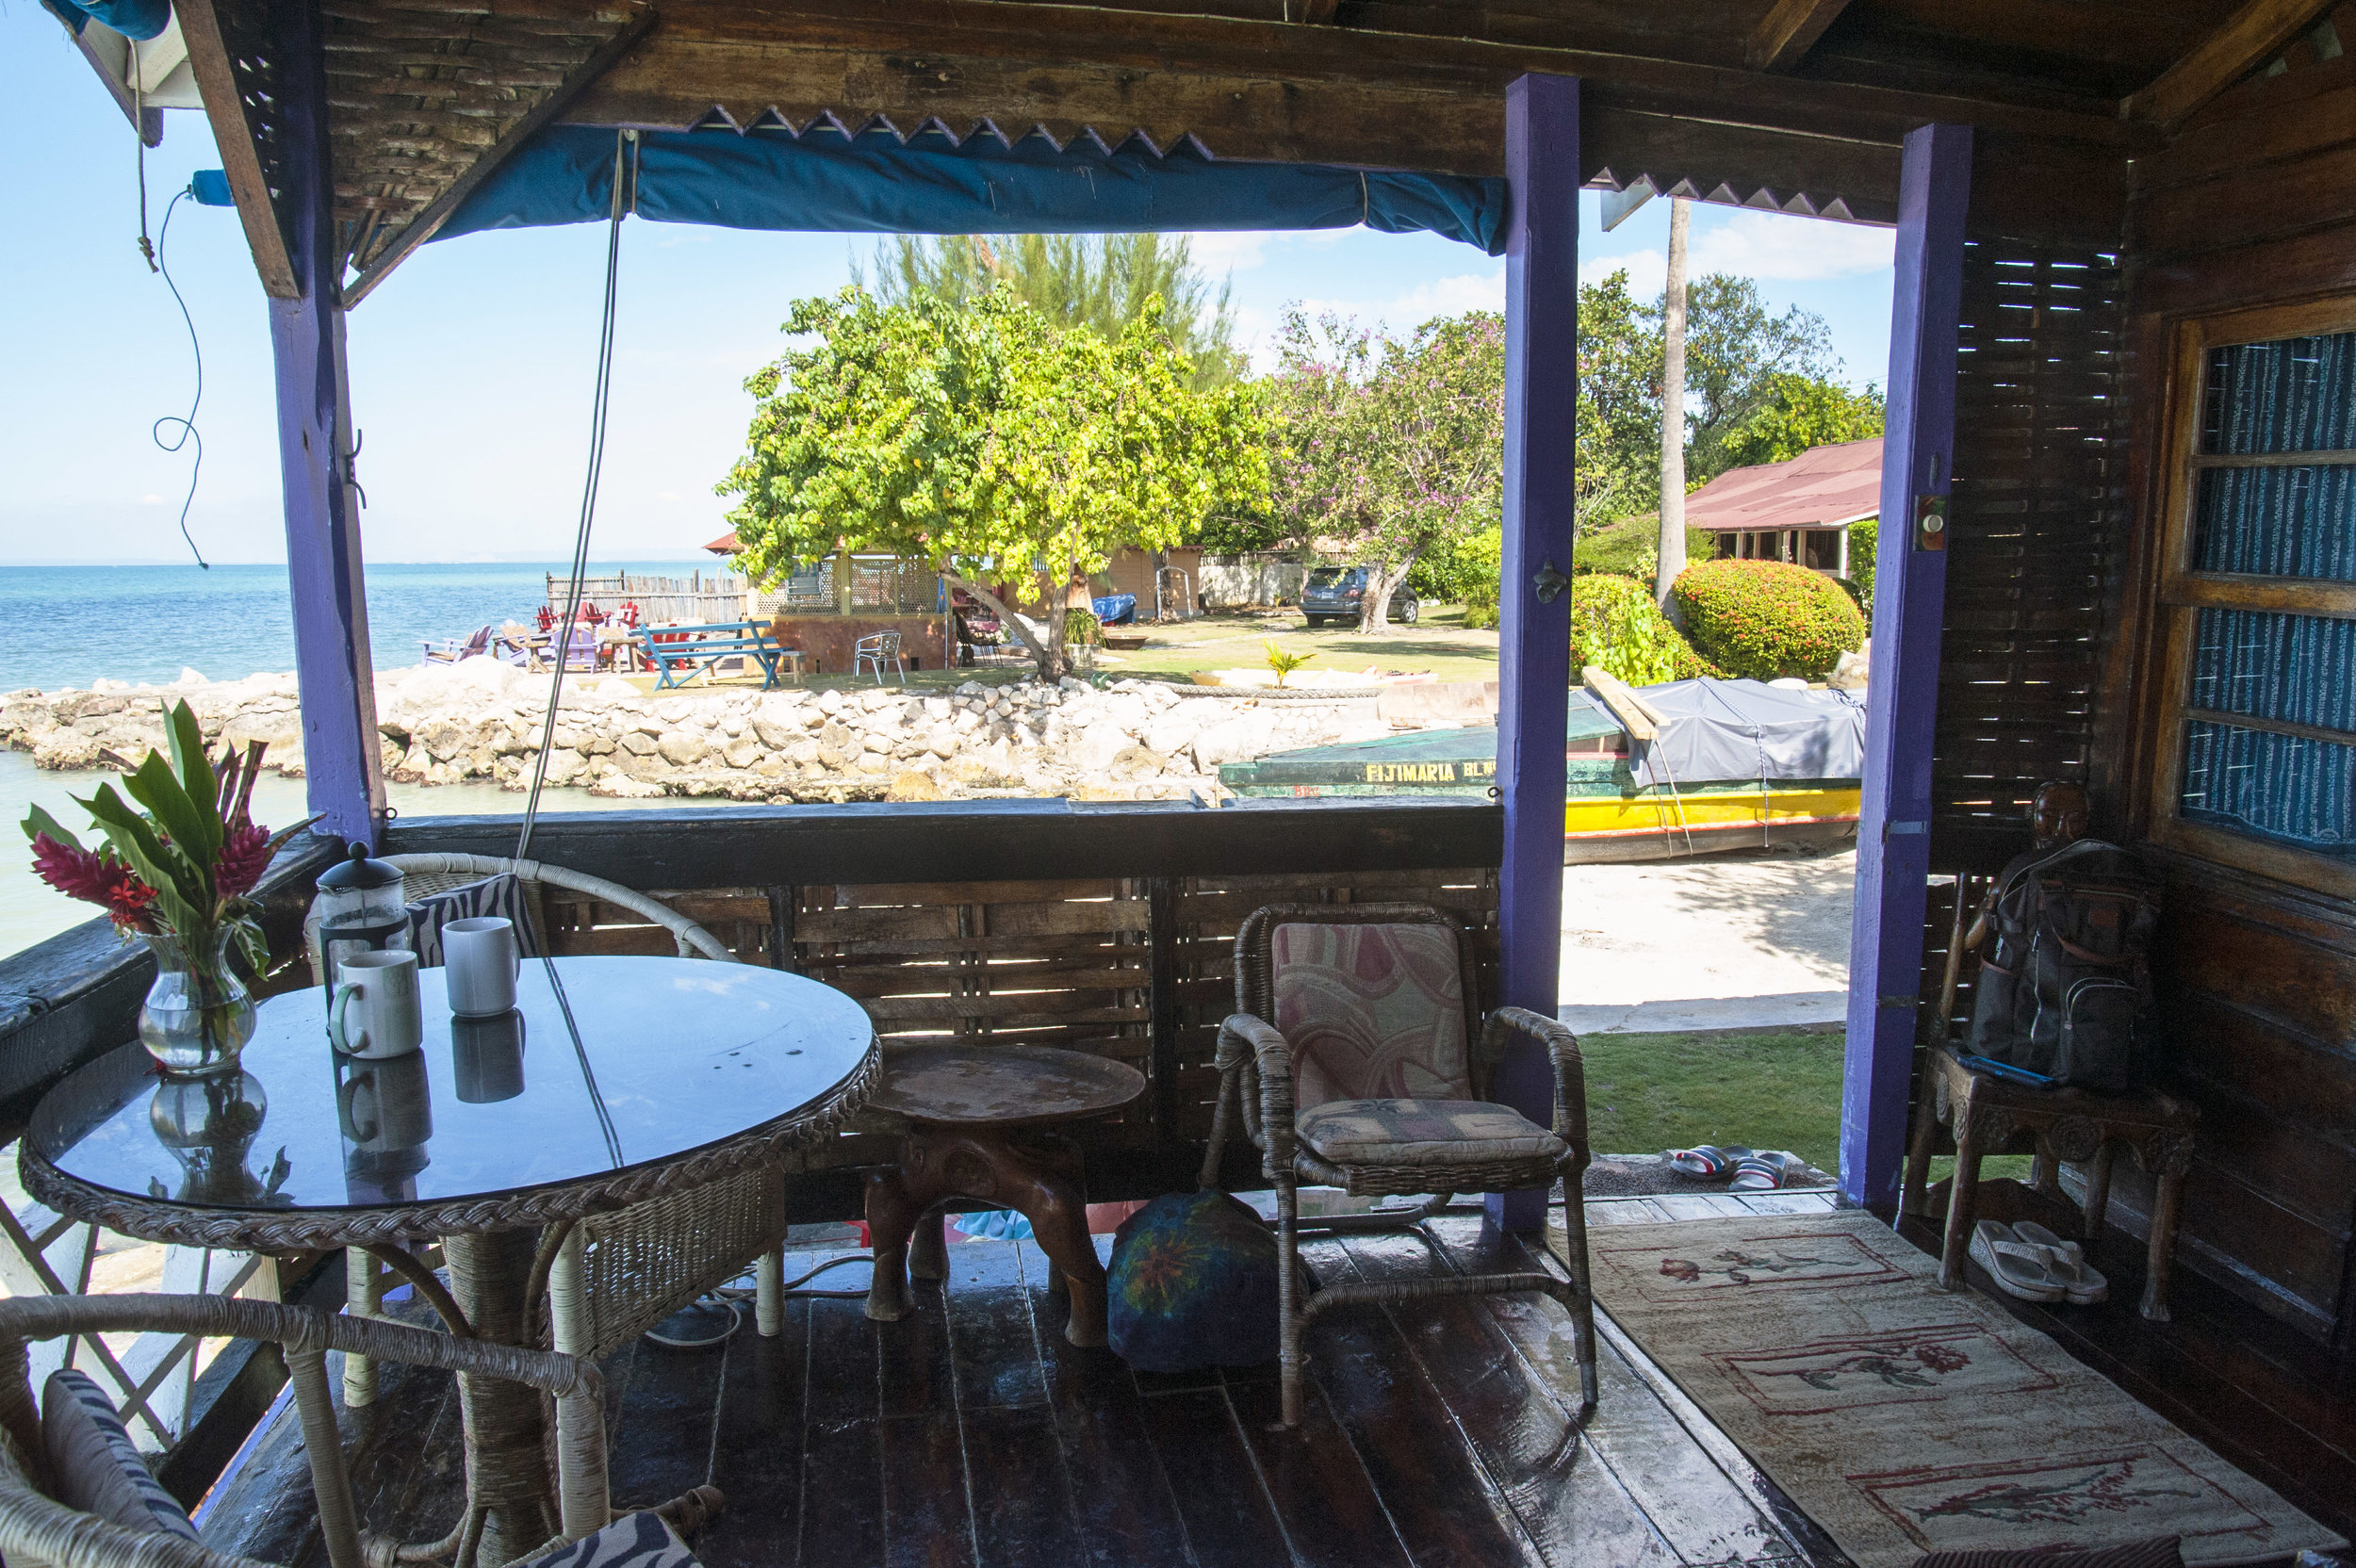 Horizon_Sea Ranch_Blueifields_Jamaica_19.jpg